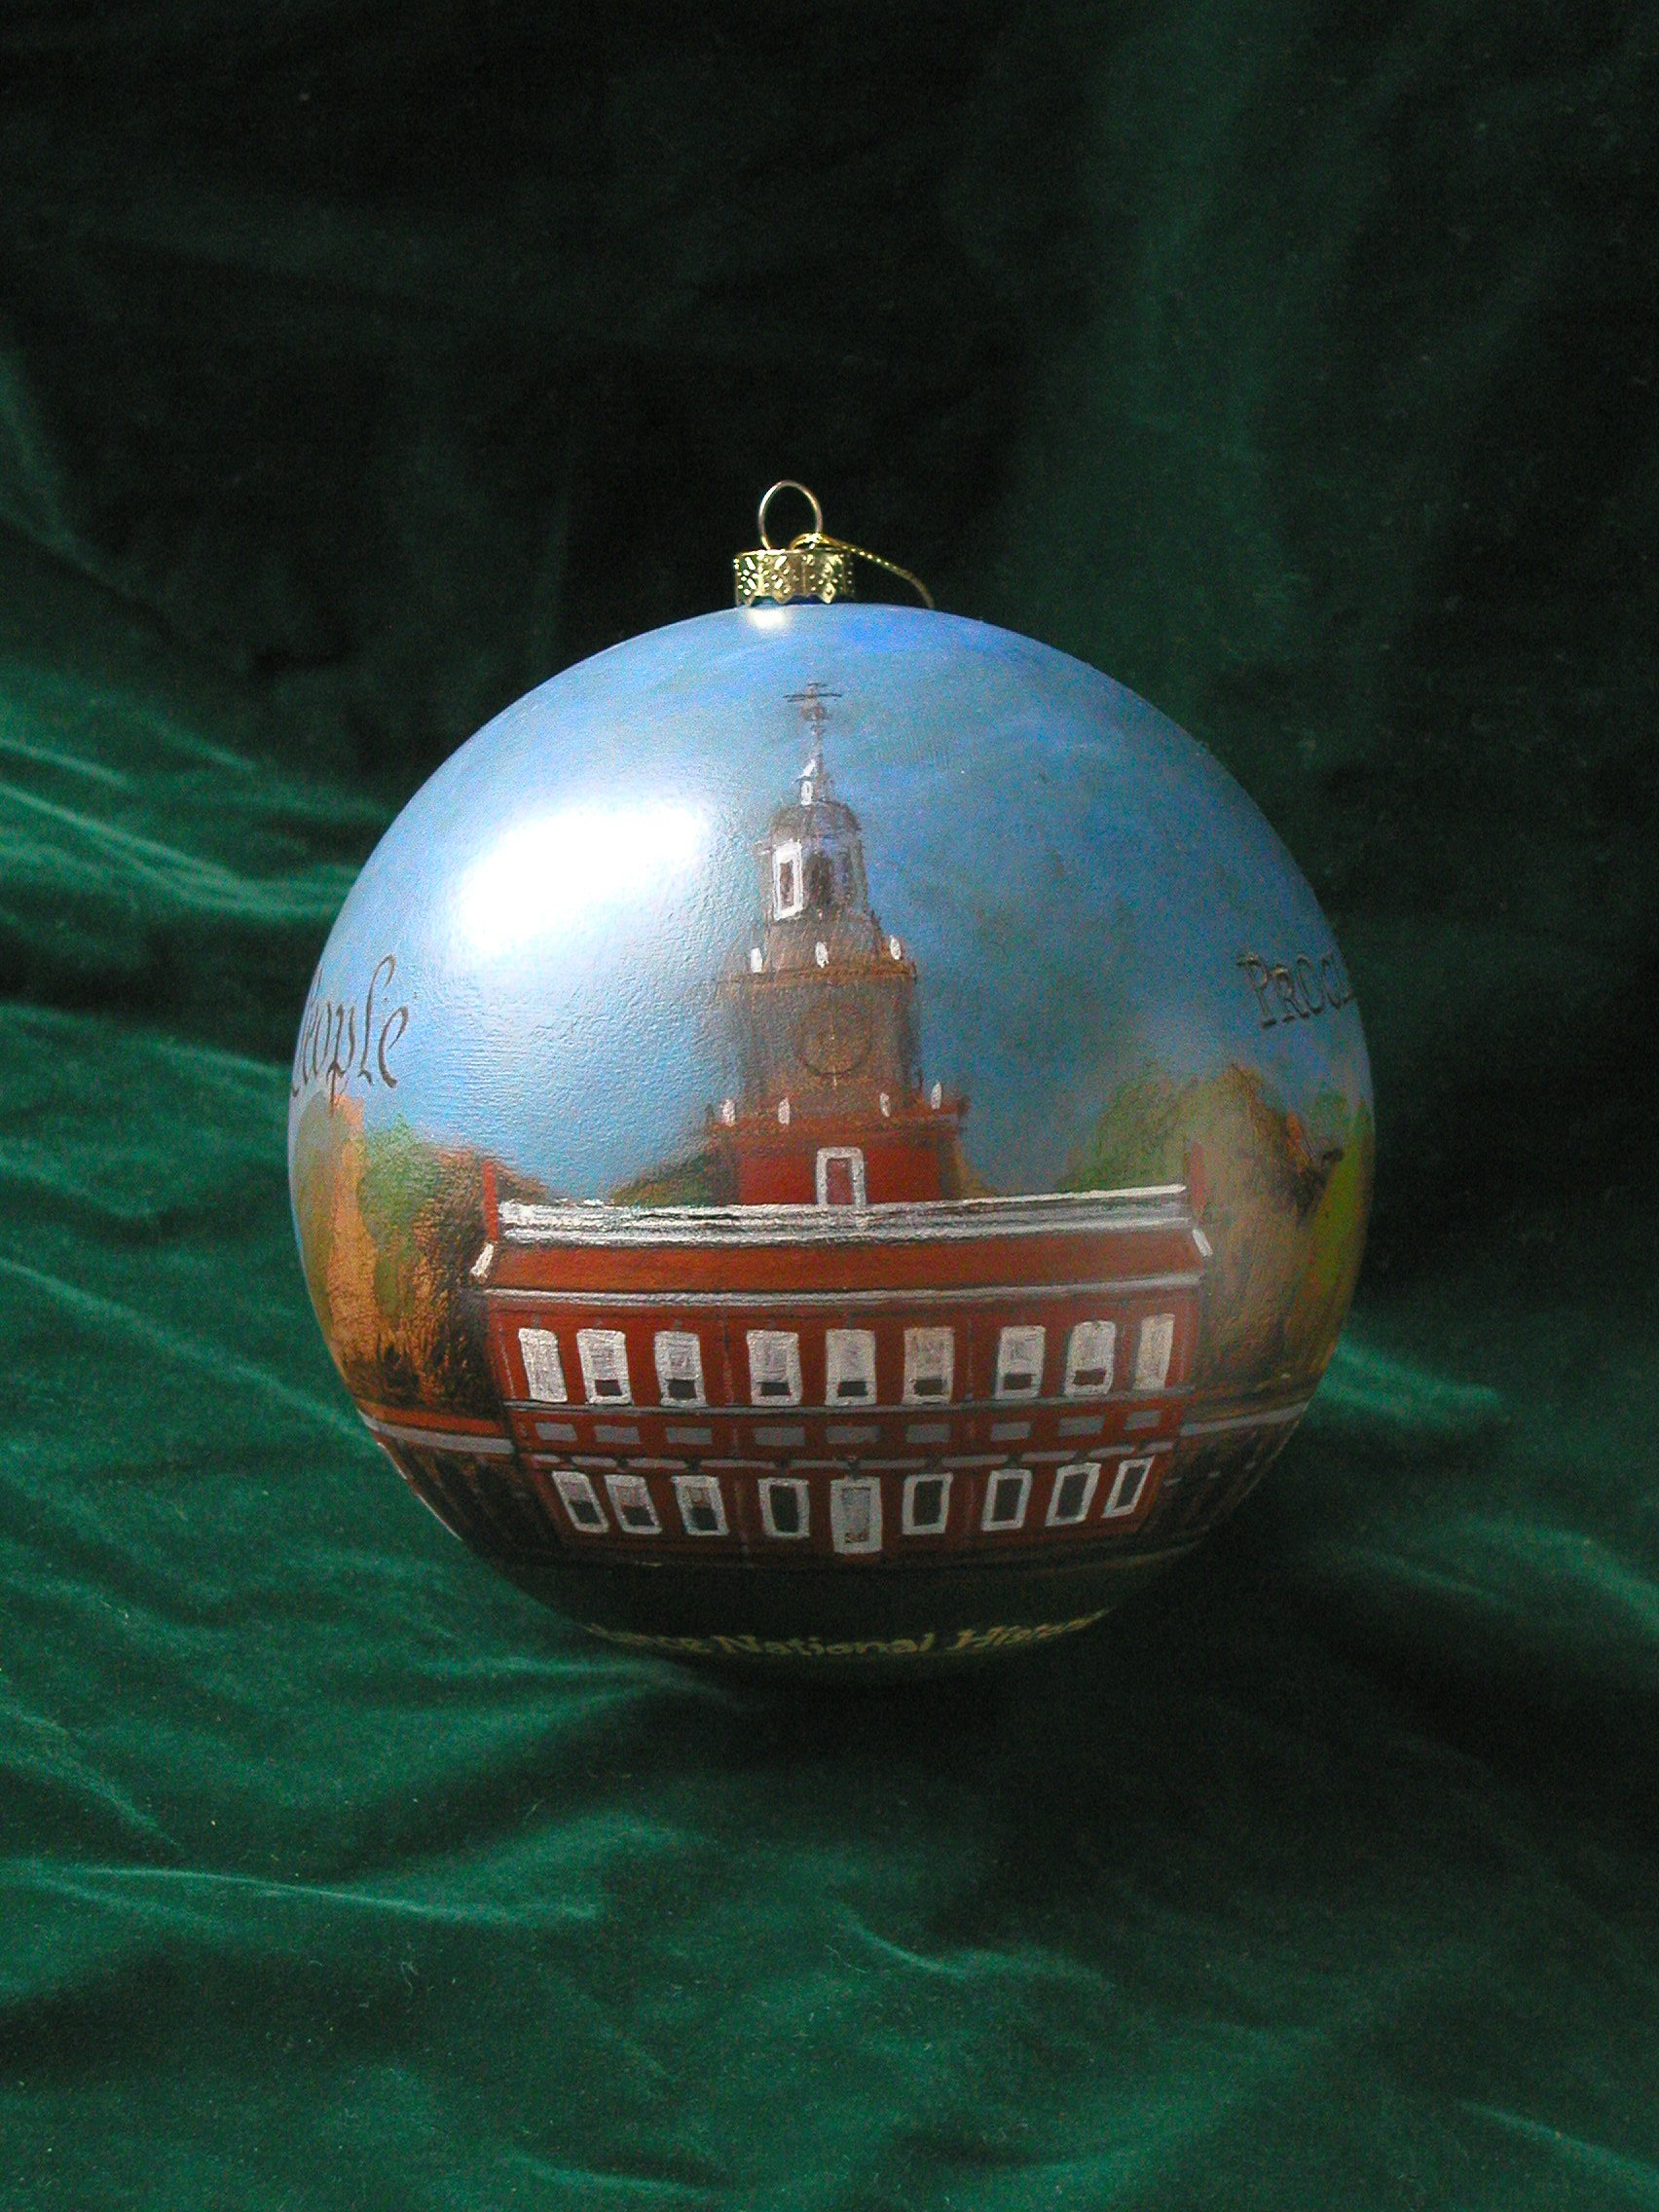 White house christmas ornaments historical society -  White House Christmas Tree Ornament Commissioned By Independence National Historical Park Designed And Hand Painted